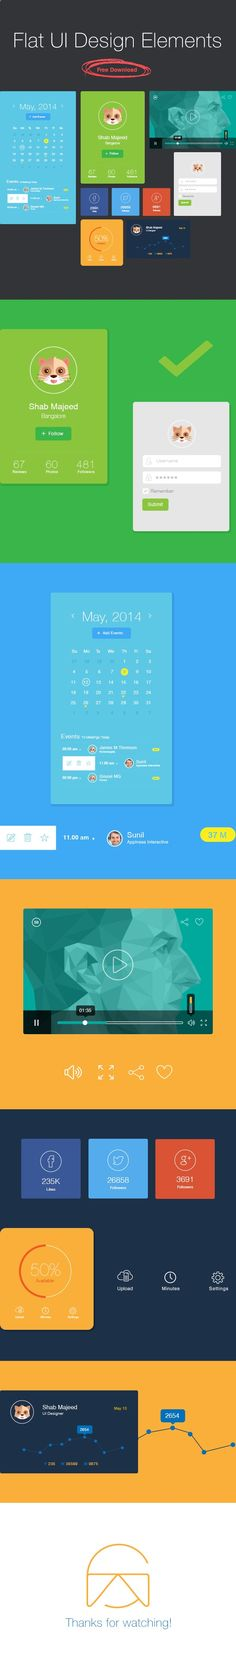 Free useful Flat UI Design Elements for the designers that can easily adapt to fit the needs of your design project.Come with plenty of useful element like social profile, calendar, login form, video player and others.This UI kit is free to download, #8230;